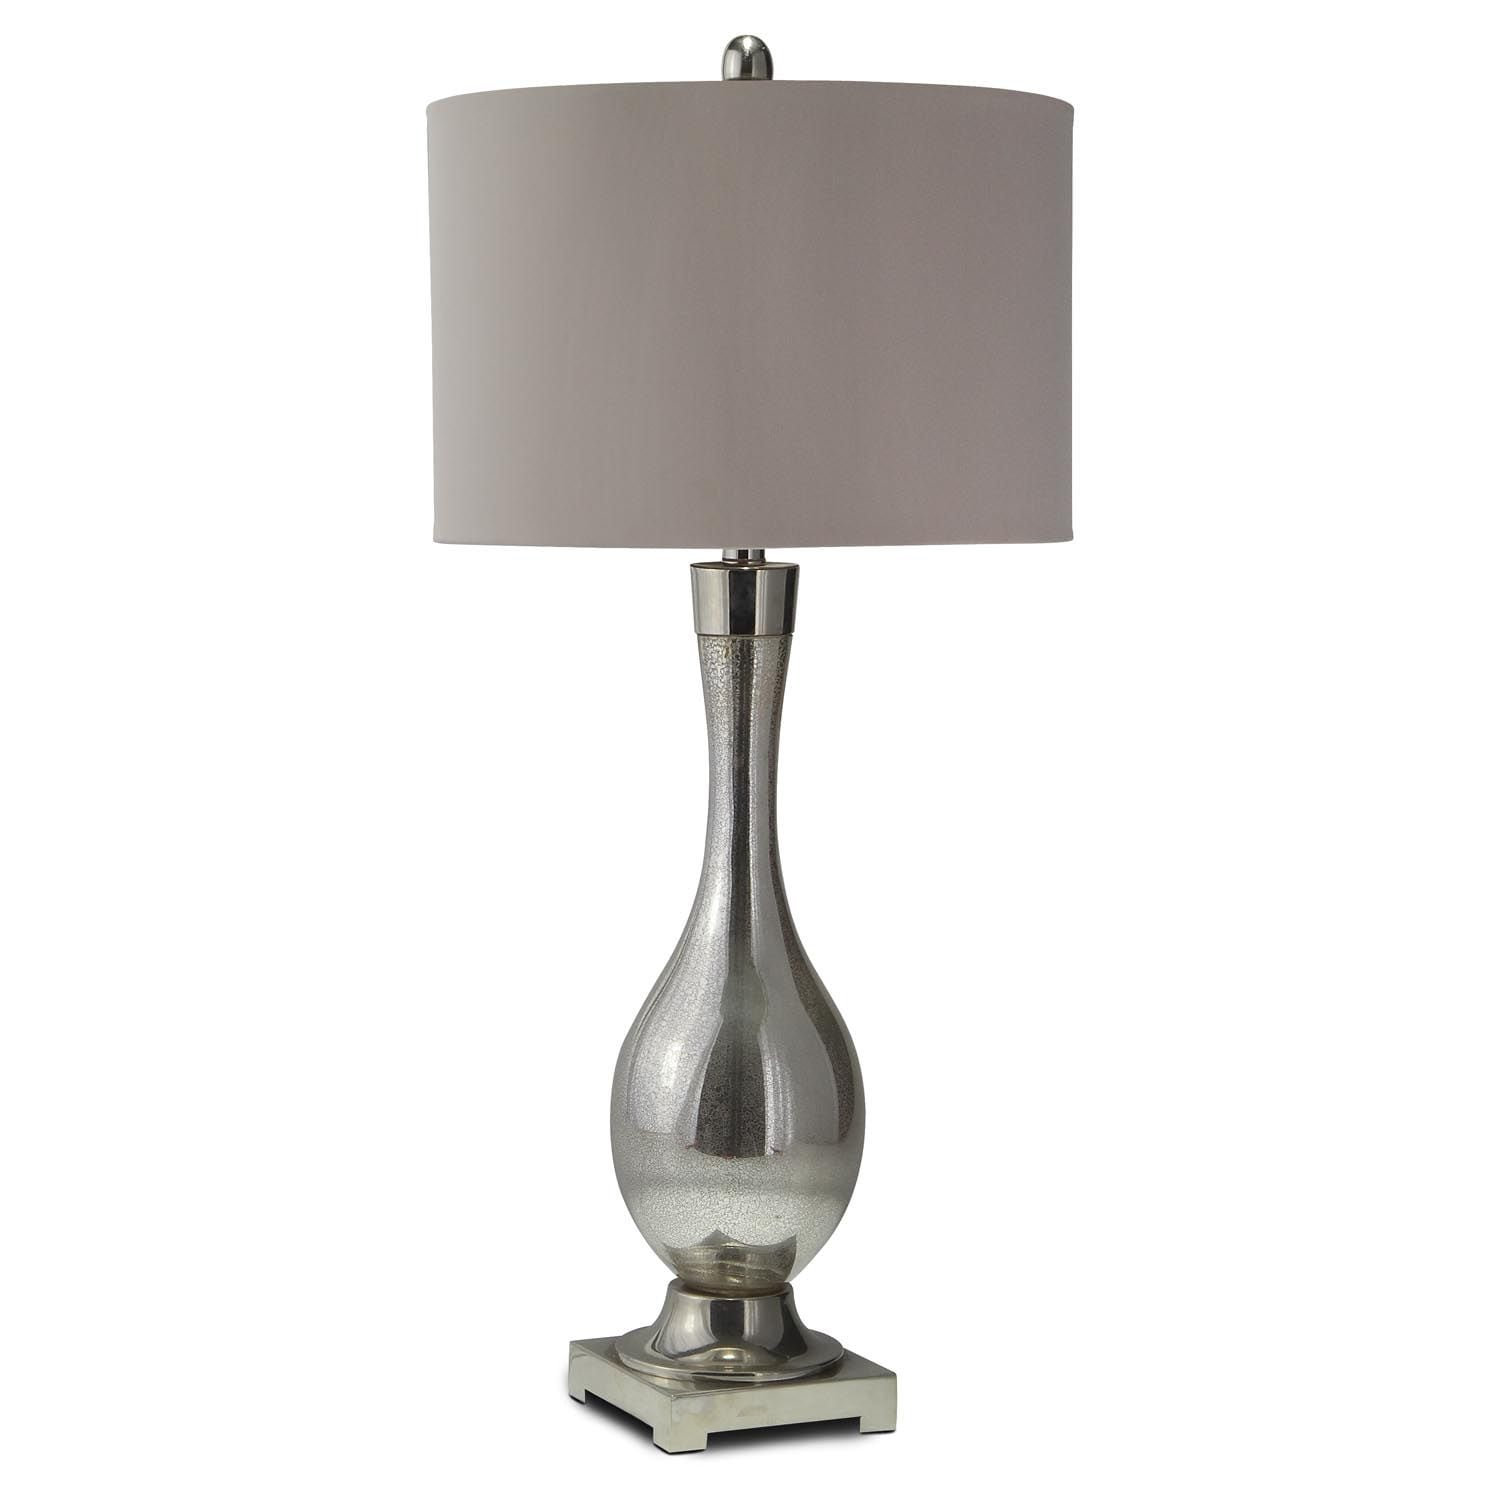 Mercury Glass Table Lamp Value City Furniture : 388432 from www.valuecityfurniture.com size 1500 x 1500 jpeg 56kB